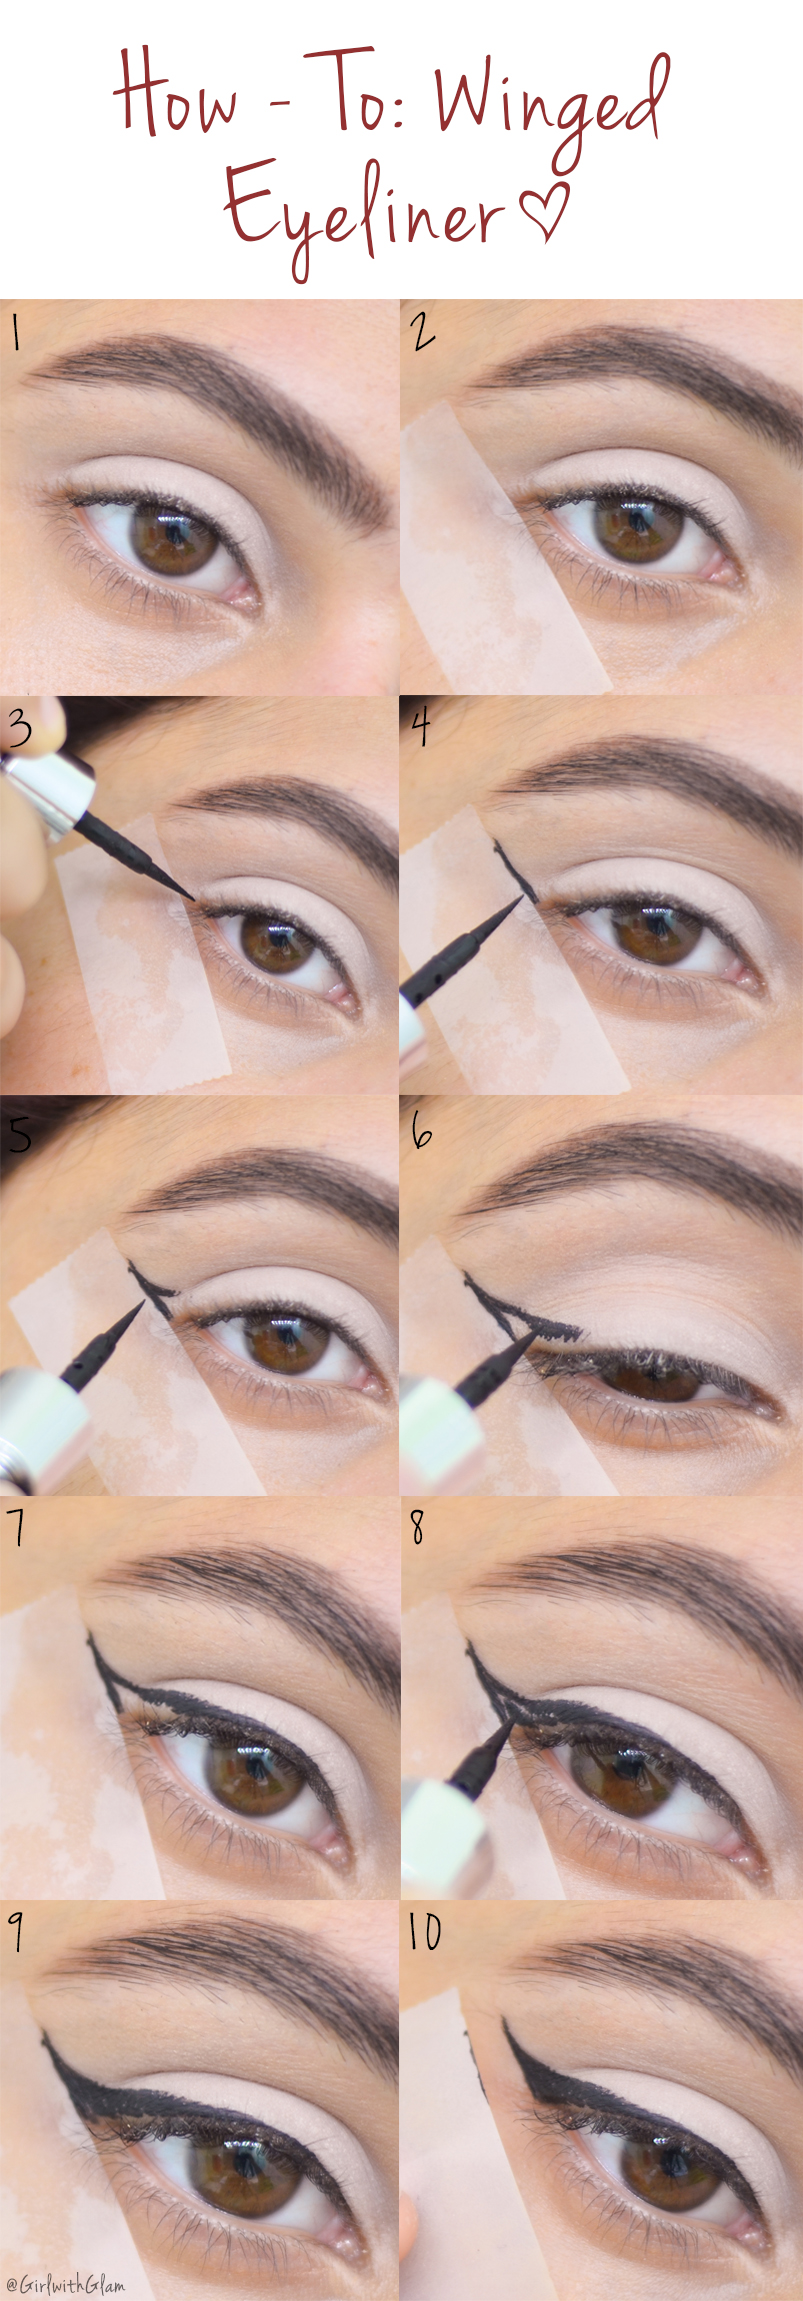 How To: Winged Eyeliner [Tape Method]*  Girl with Glam